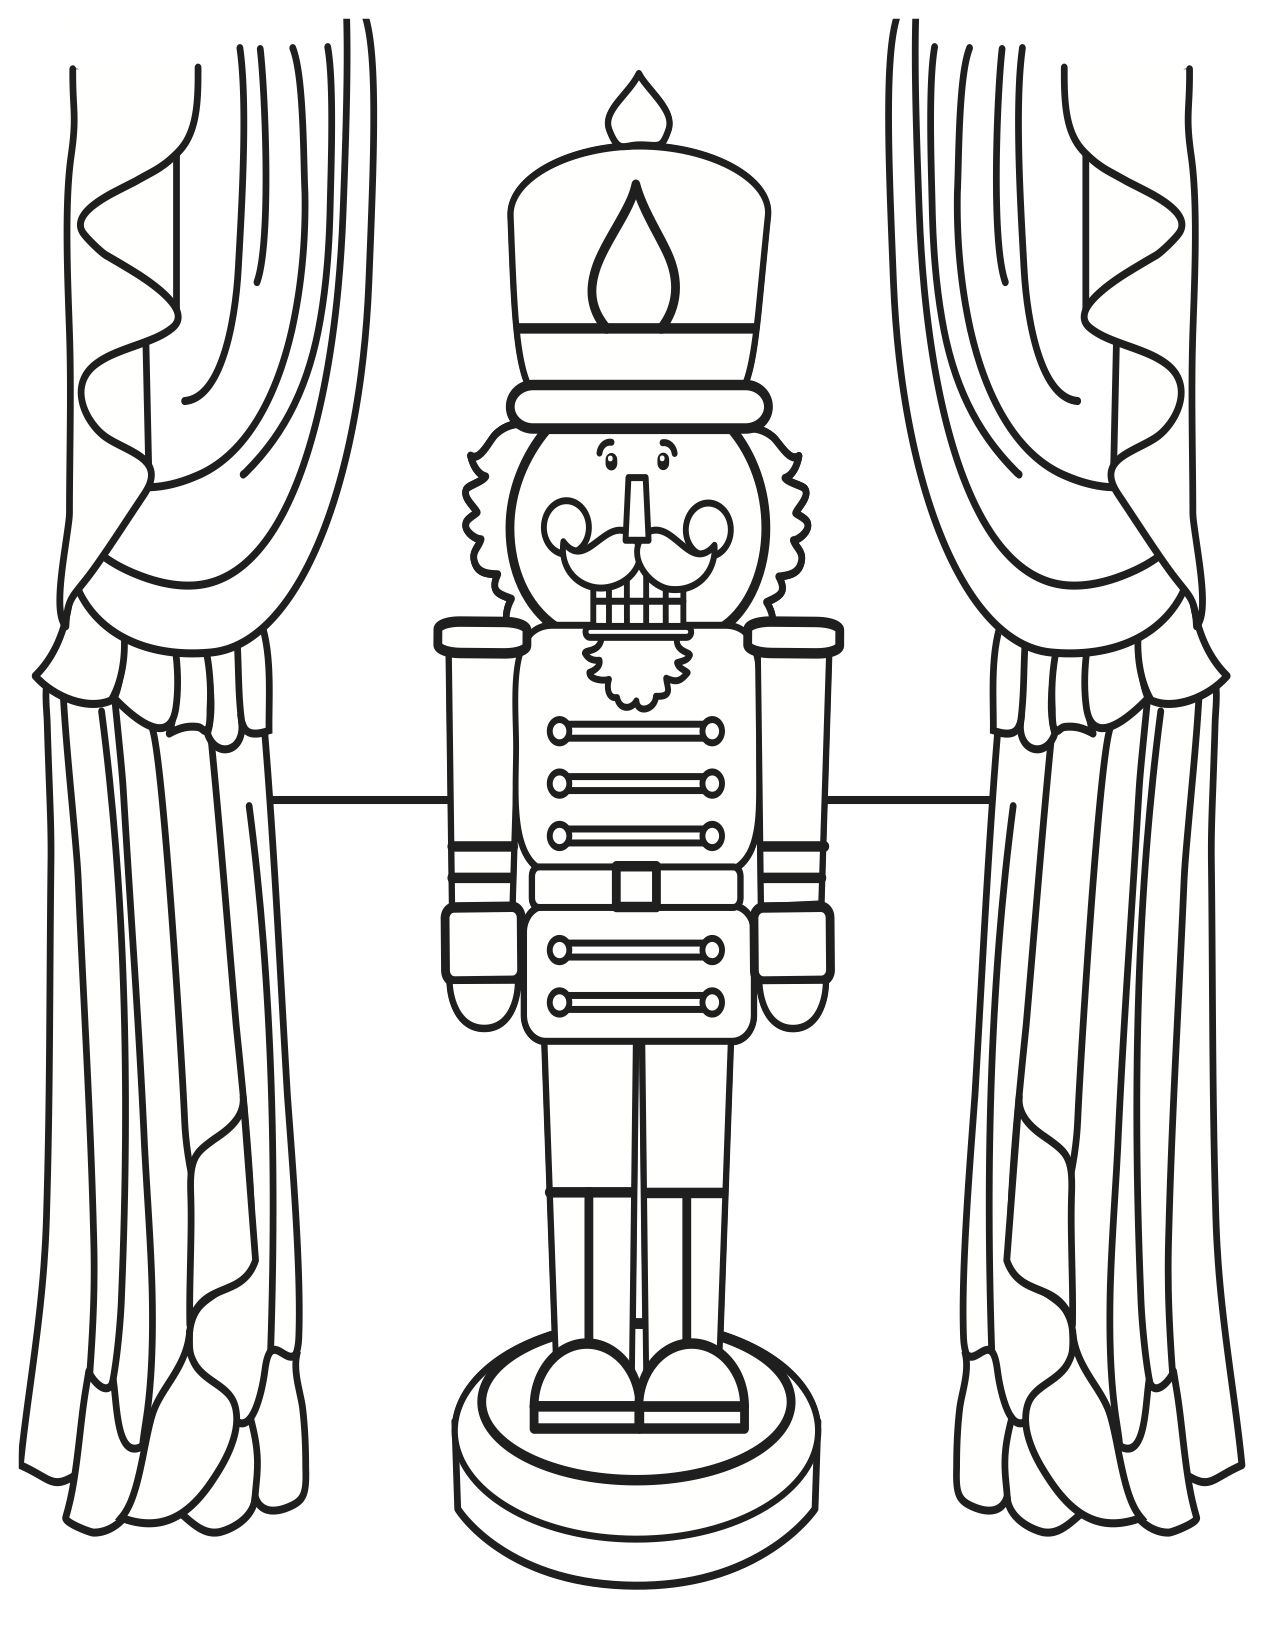 Nutcracker Coloring Page Kids Wood Crafts Coloring Pages